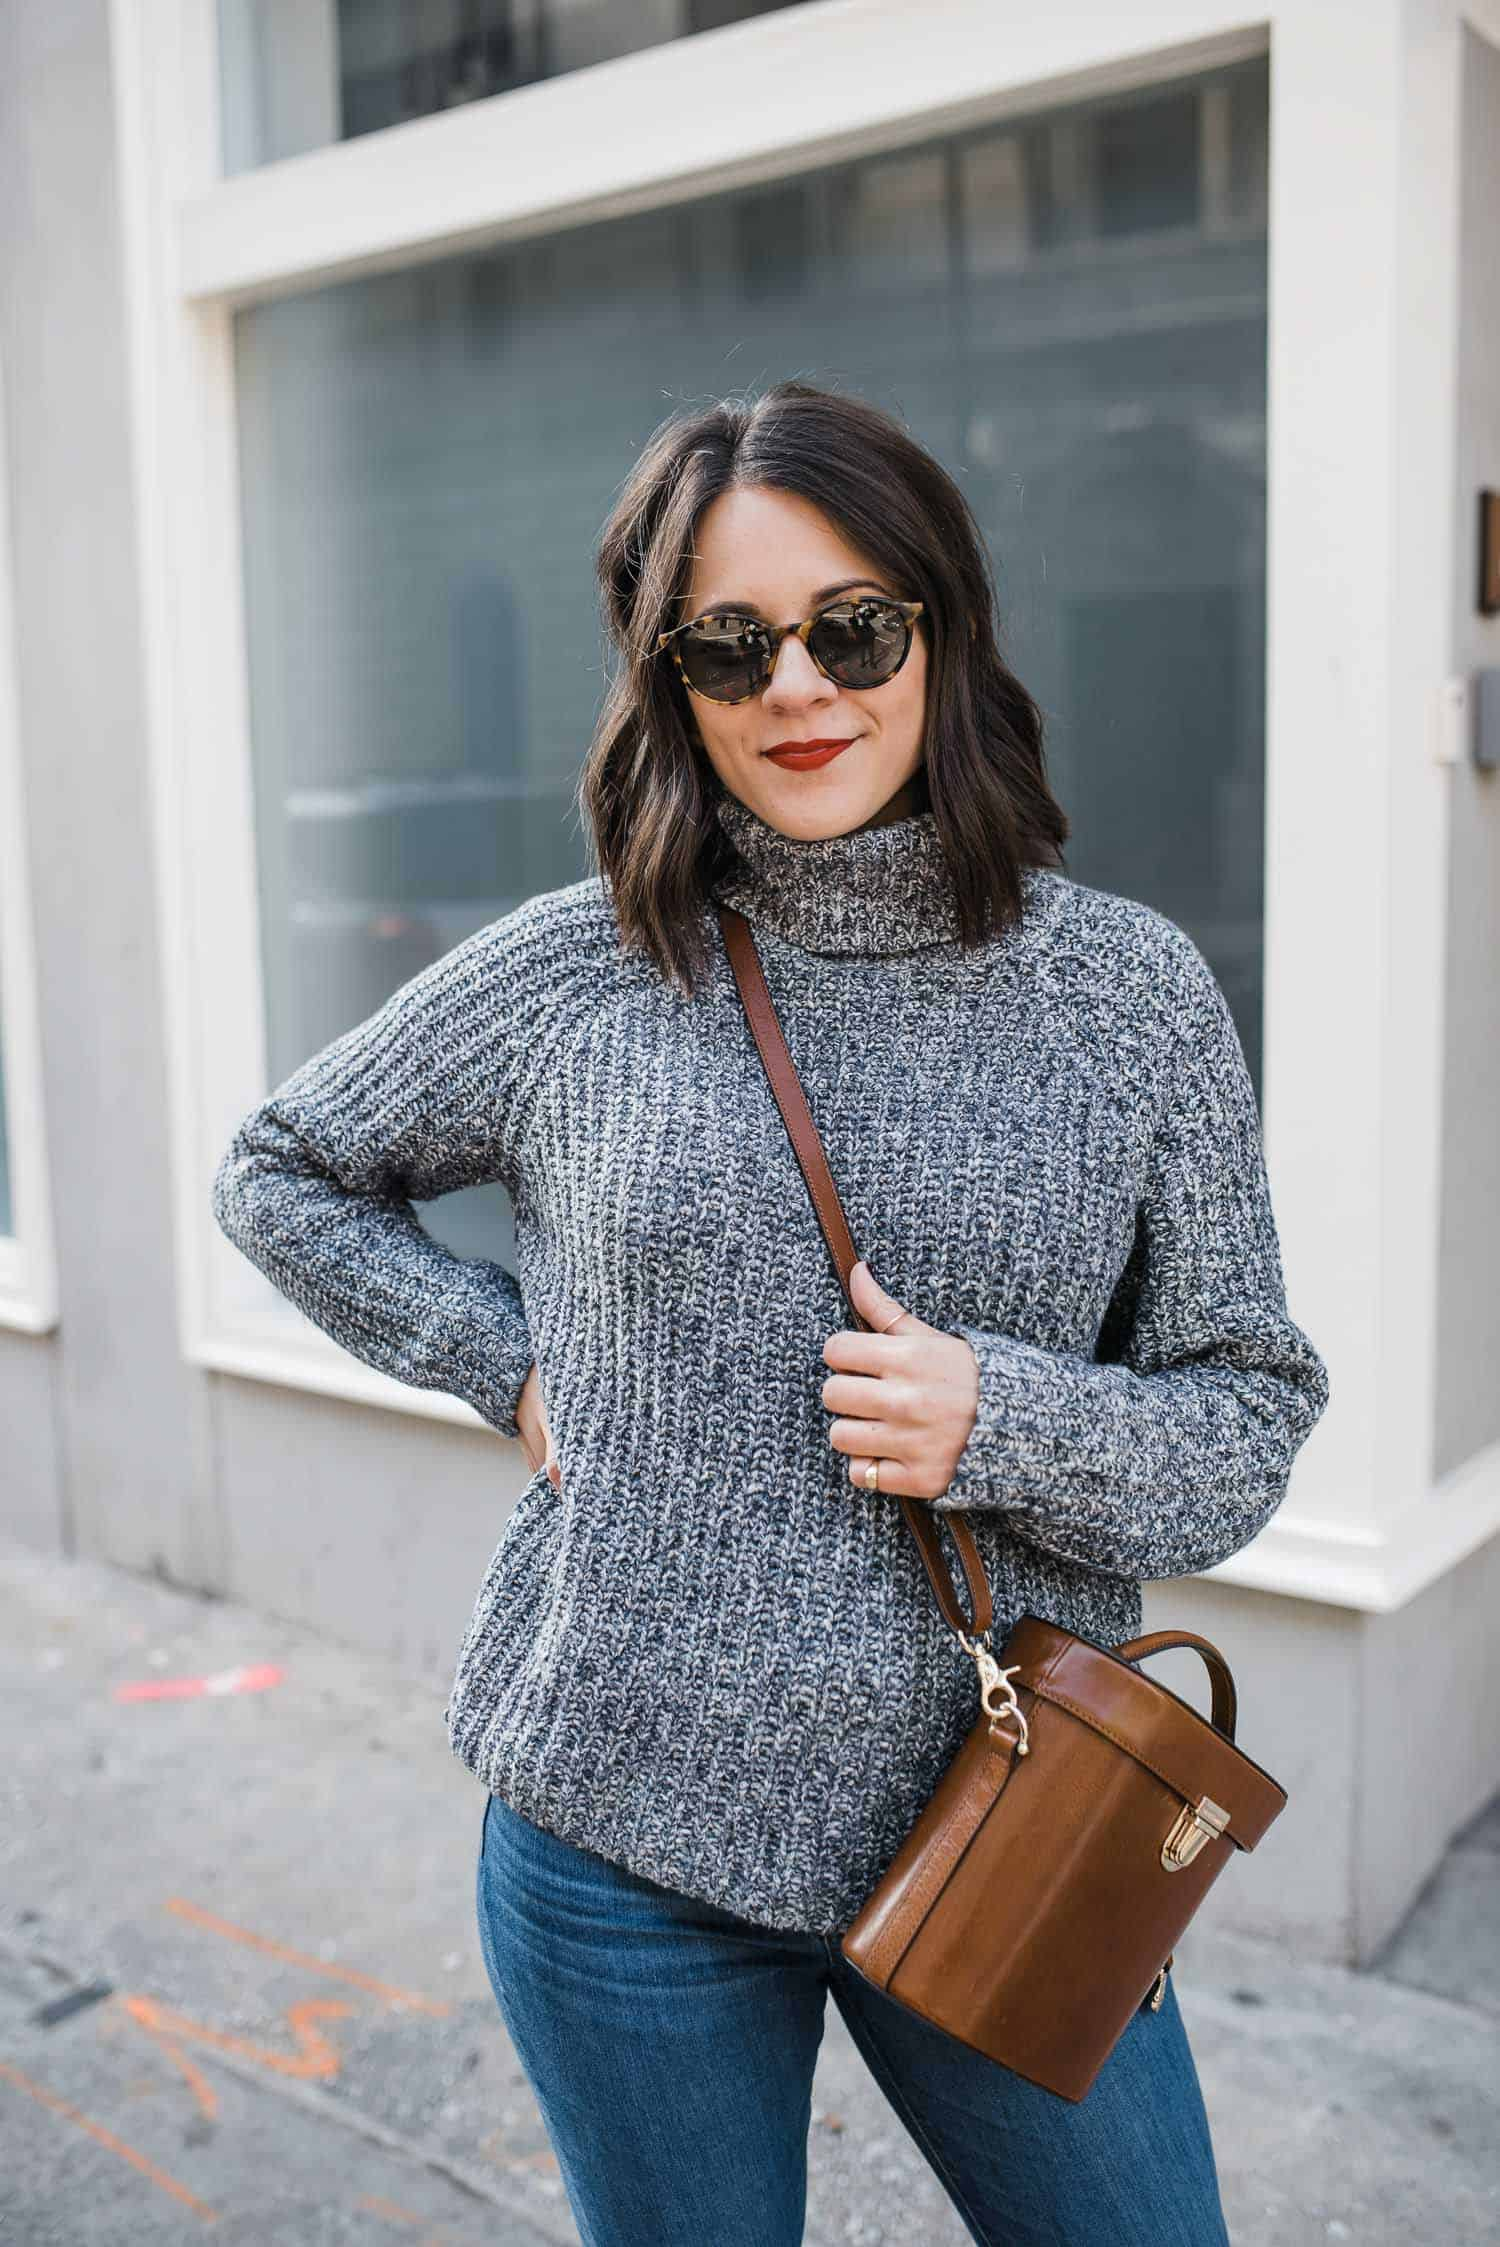 Winter Essentials For Cozy Casual Outfits